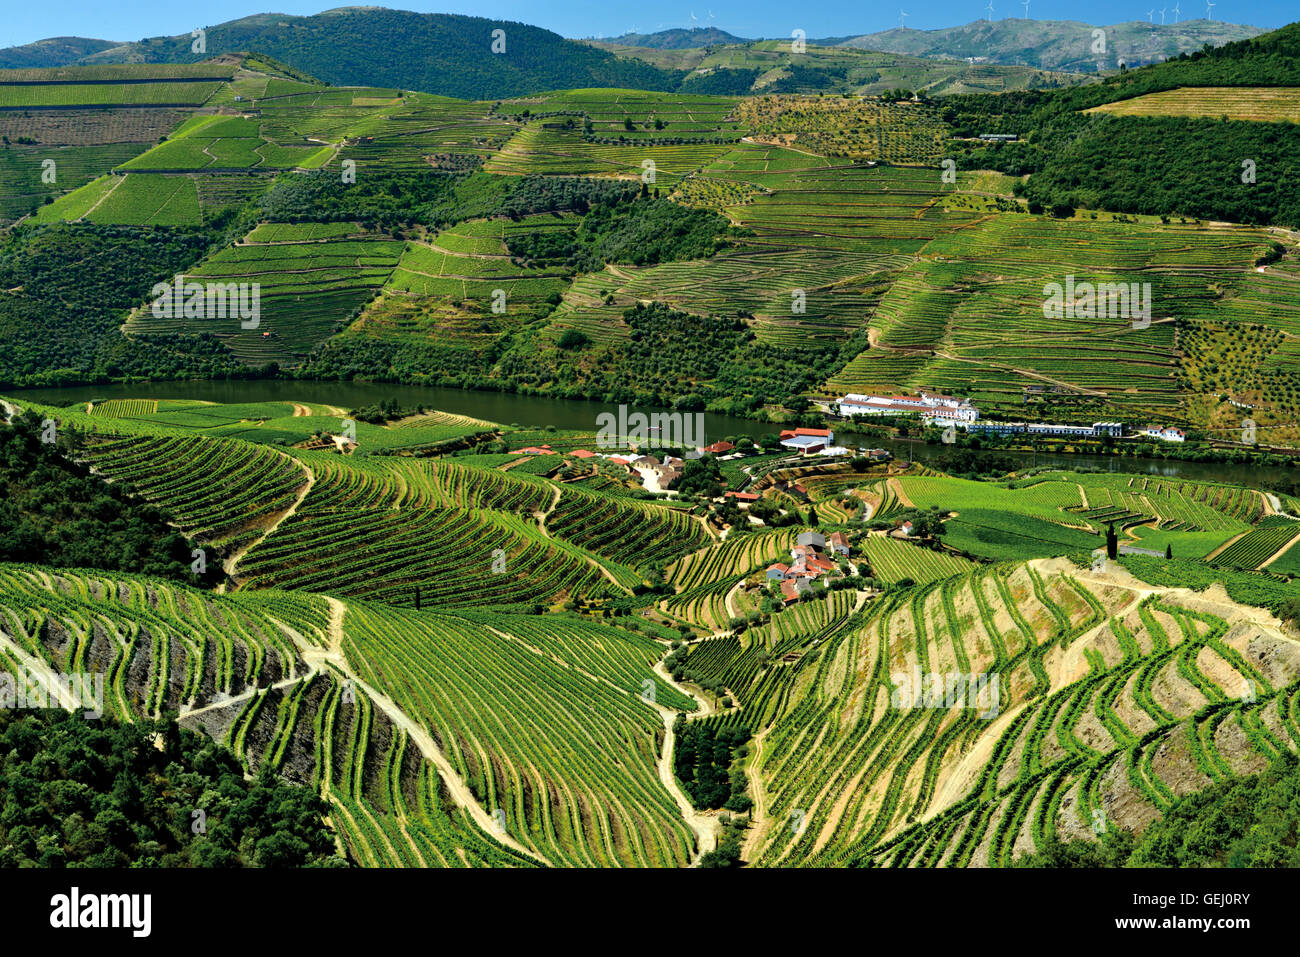 Portugal: Green wine yards and terraces of the Douro Valley - Stock Image